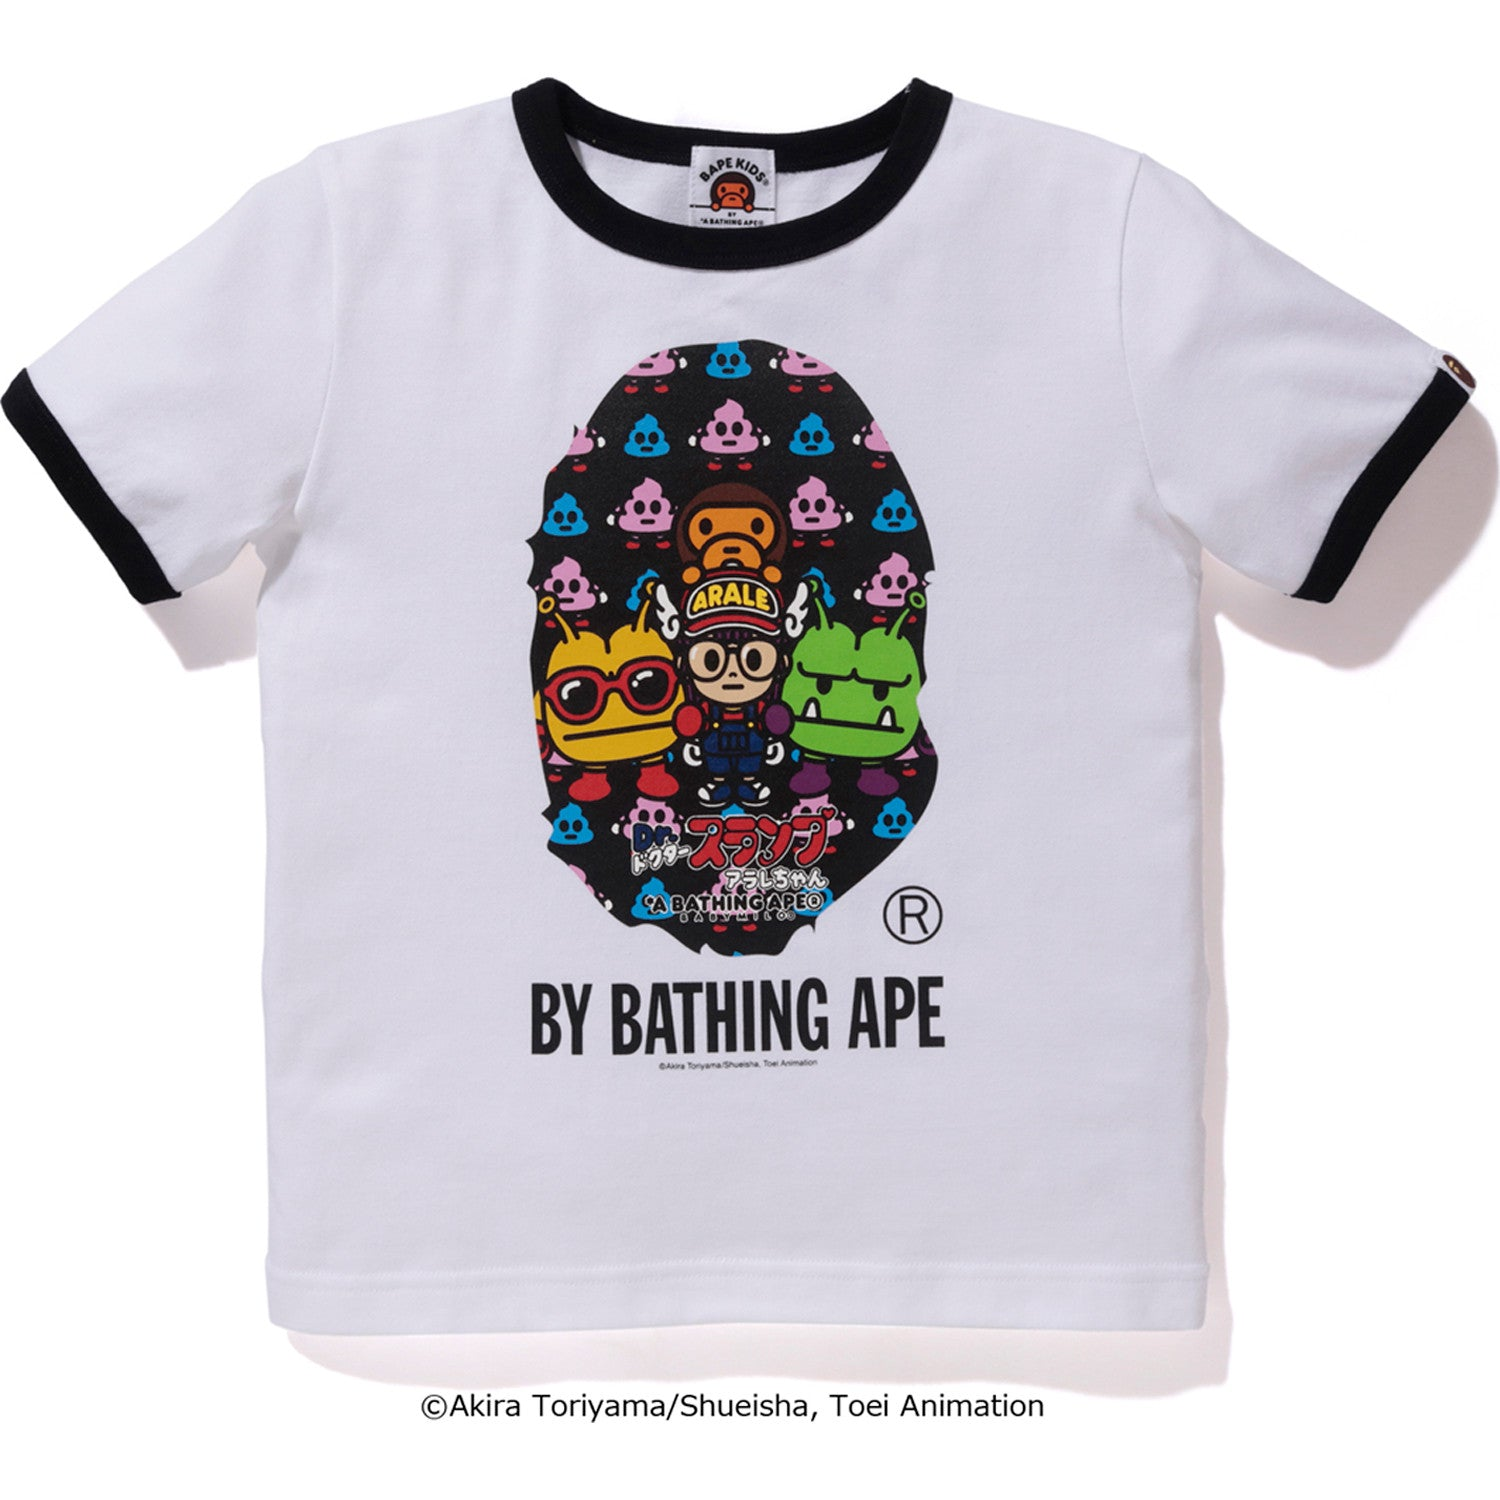 d6baf80f https://us.bape.com/ daily https://us.bape.com/products/1c23-310-927 ...